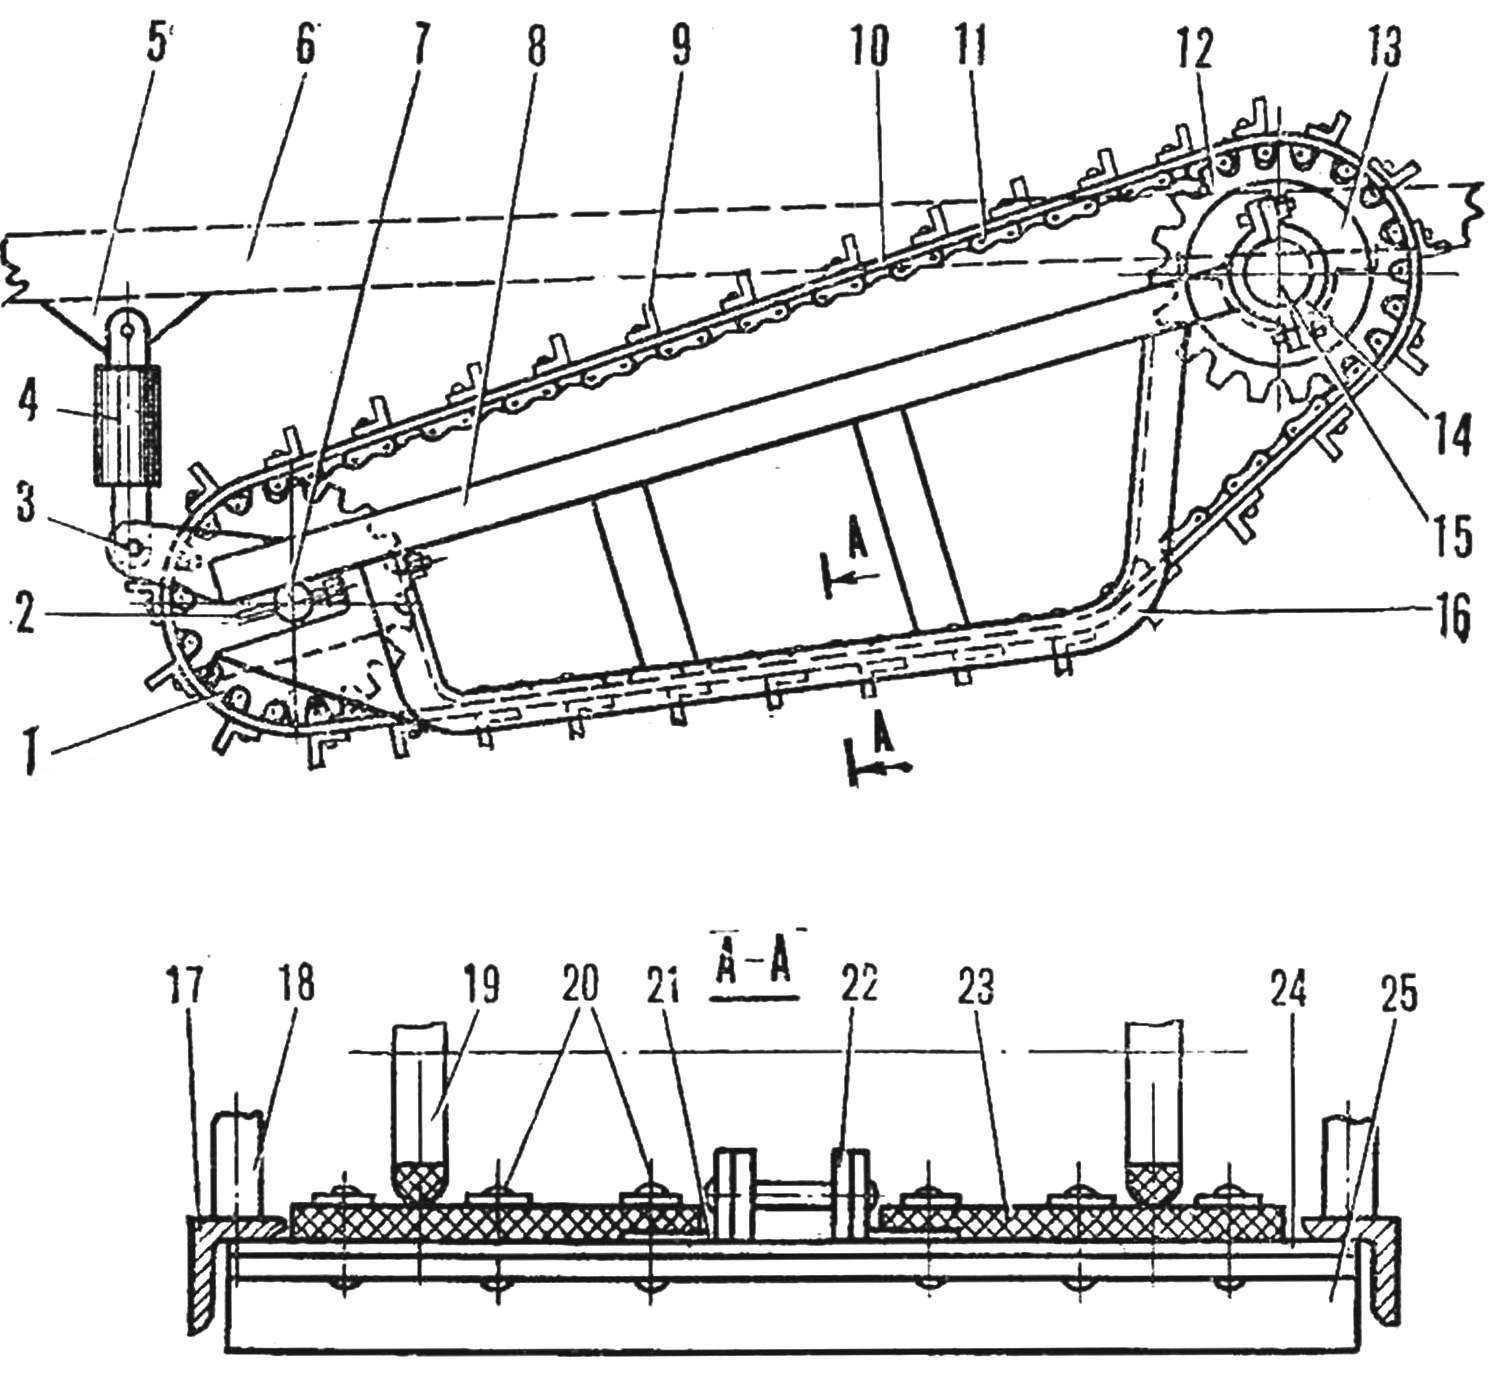 Fig. 7. Mover motoart